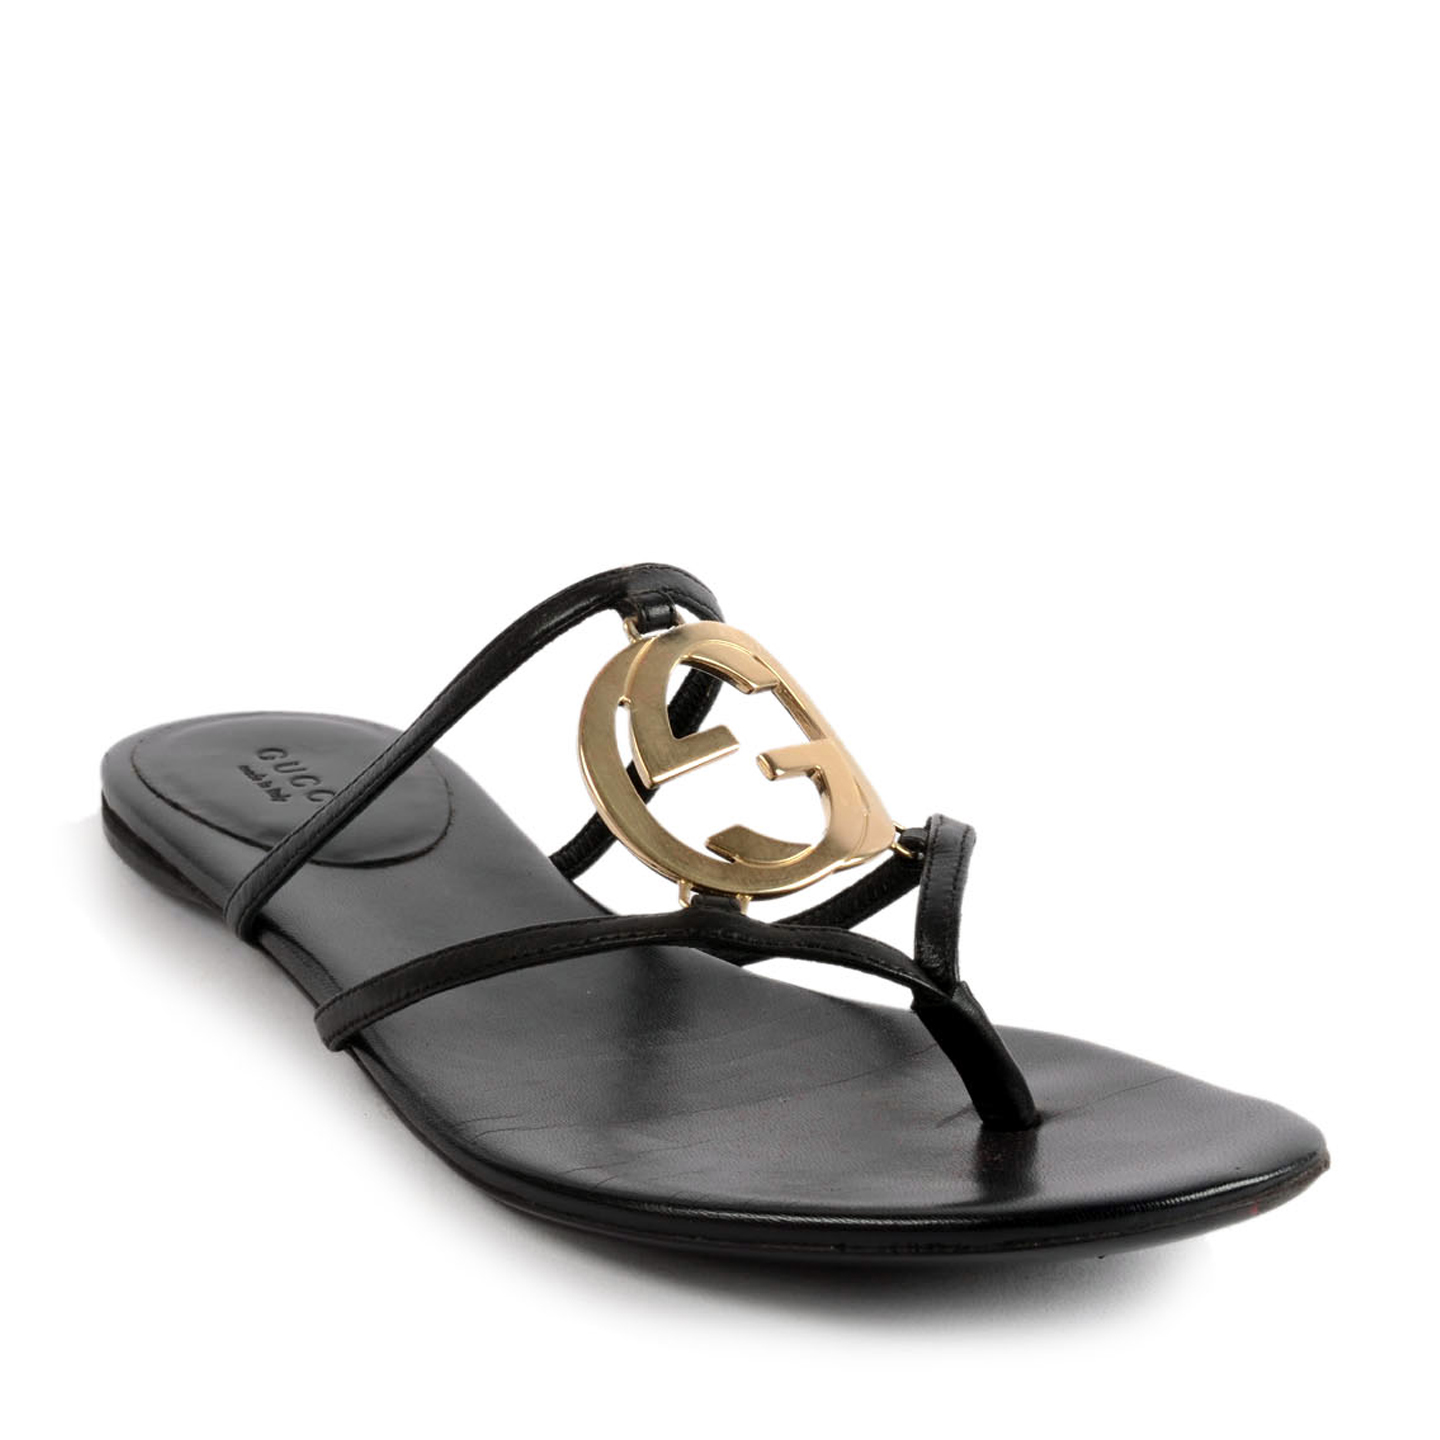 c7f6c6334 Gucci GG Cage Flat Thong Sandals Size 39 - LabelCentric